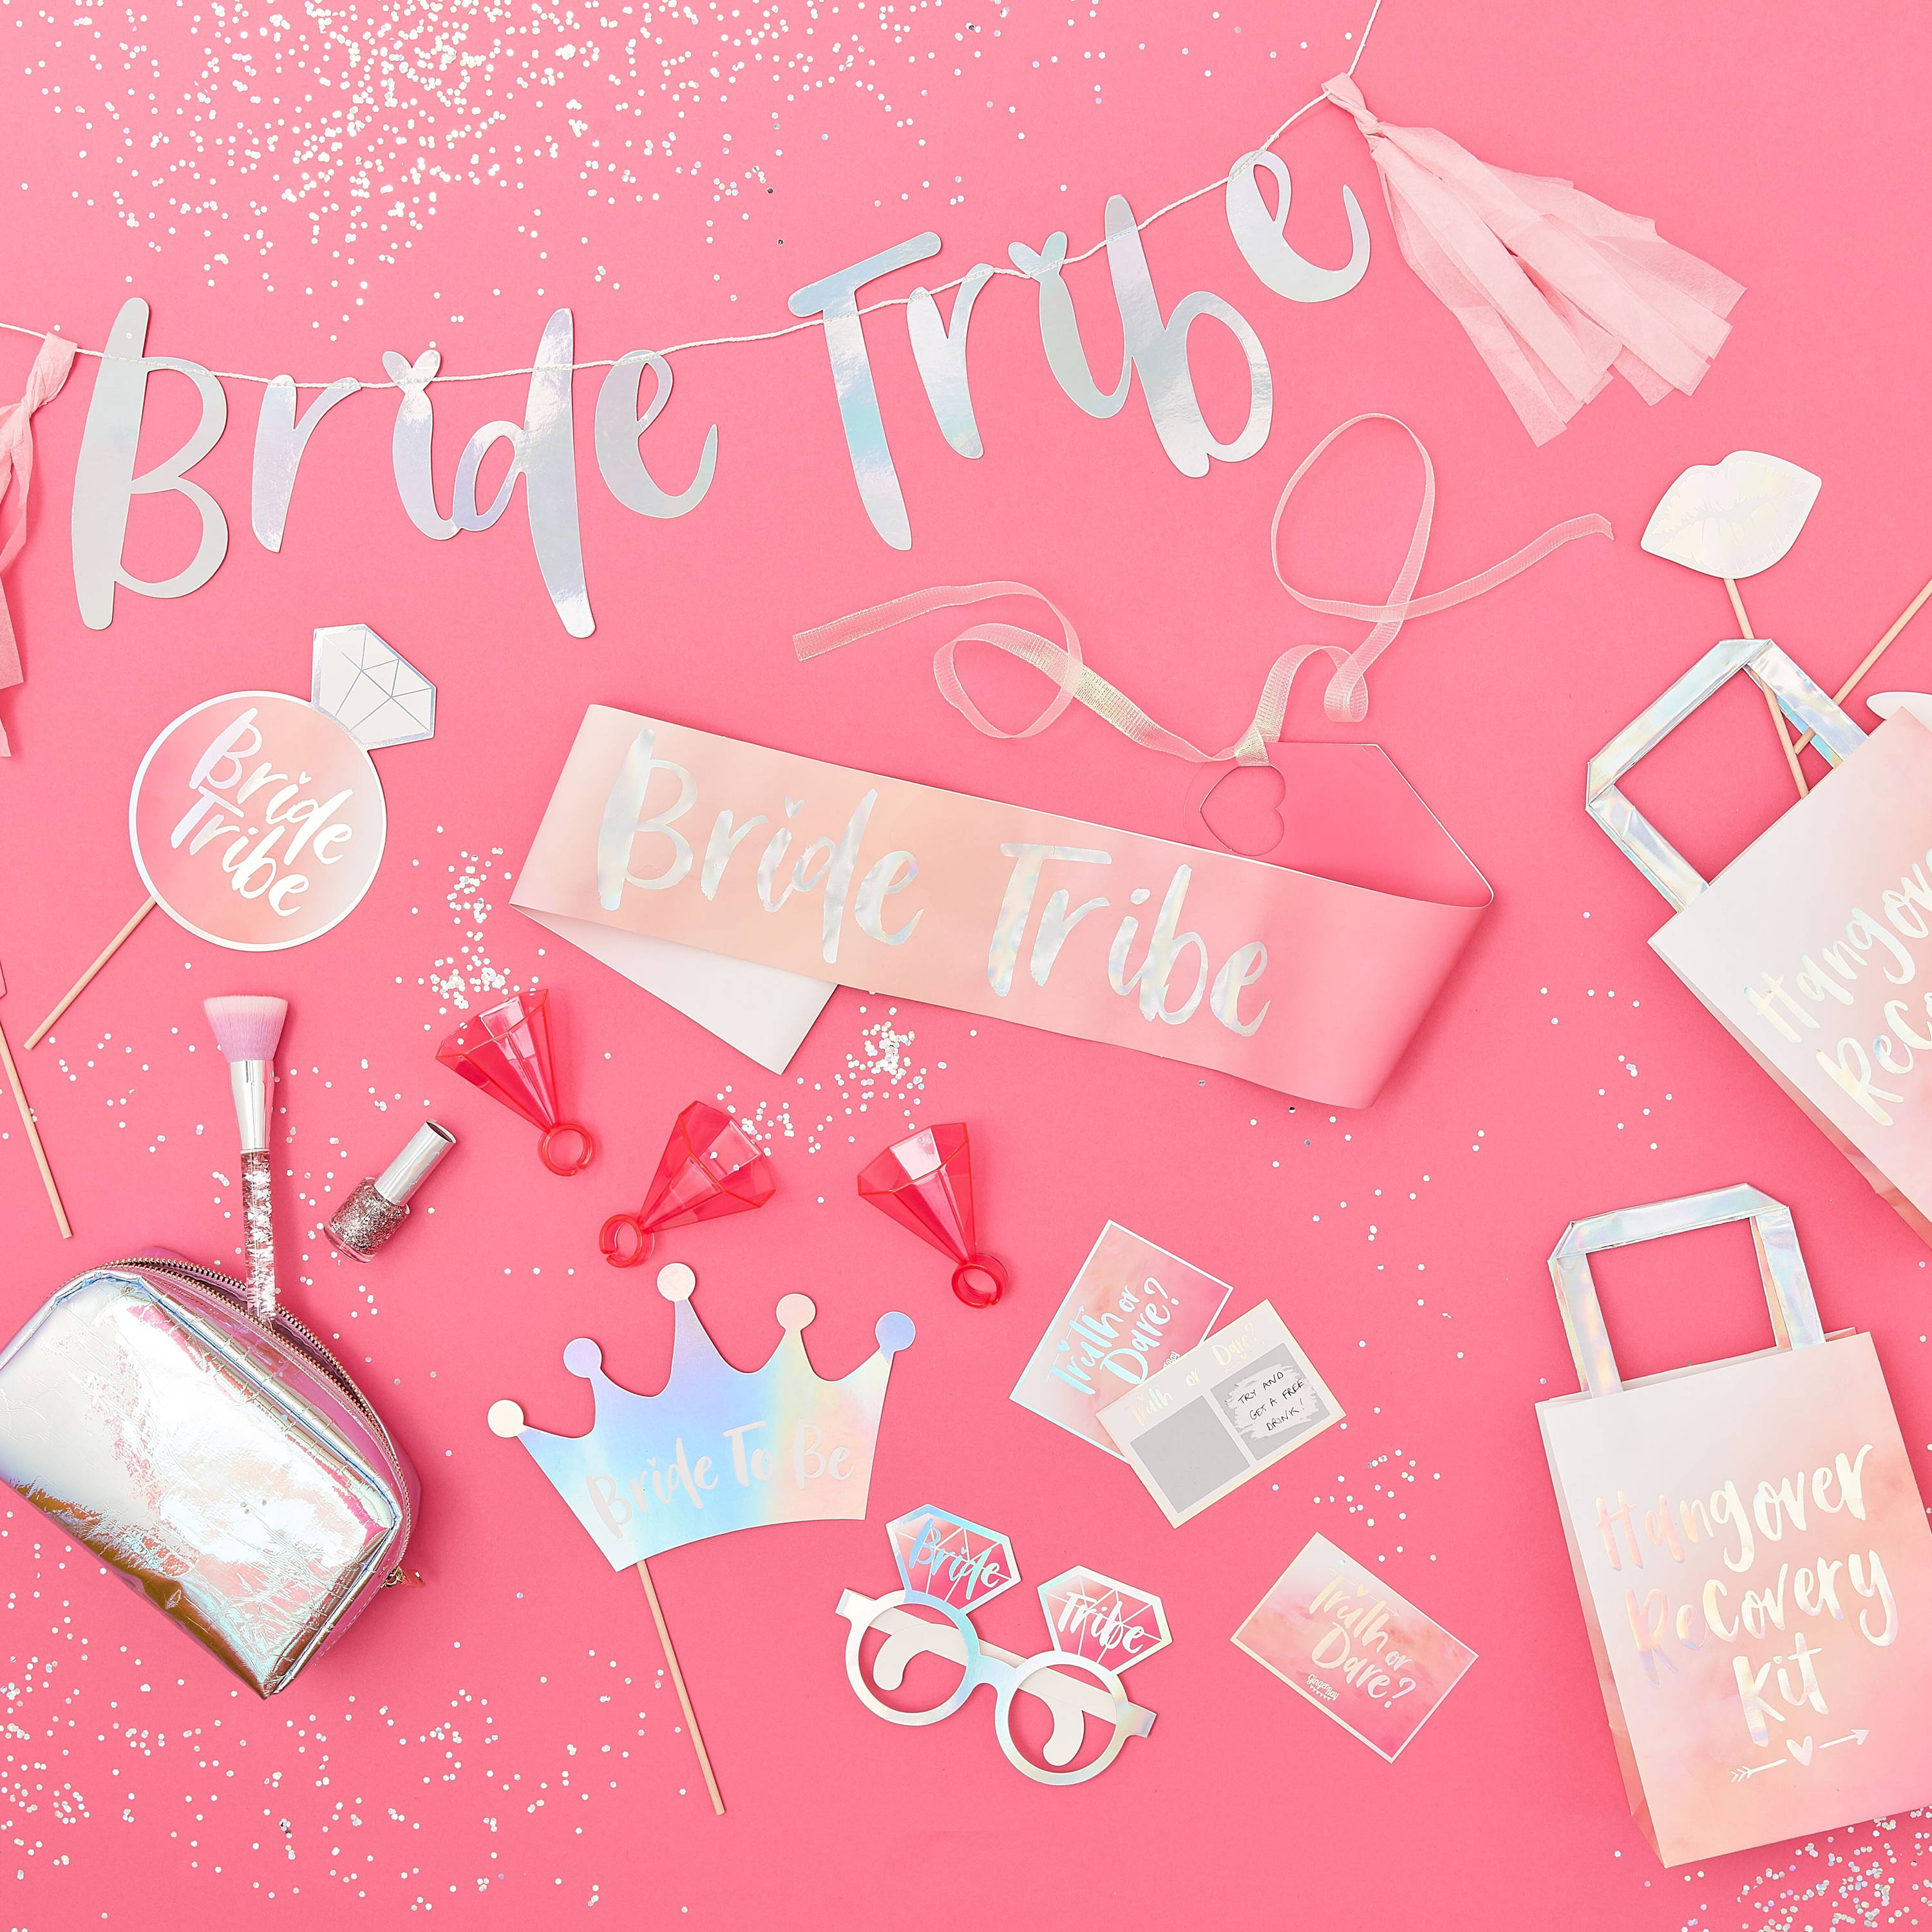 A photo of a colourful pink table topped with hen party decorations including a hen party sash saying 'Bride Tribe', truth or dare scatchcards, hen party photo booth props and gift bags too, all with a hen party banner above it saying Bride Tribe